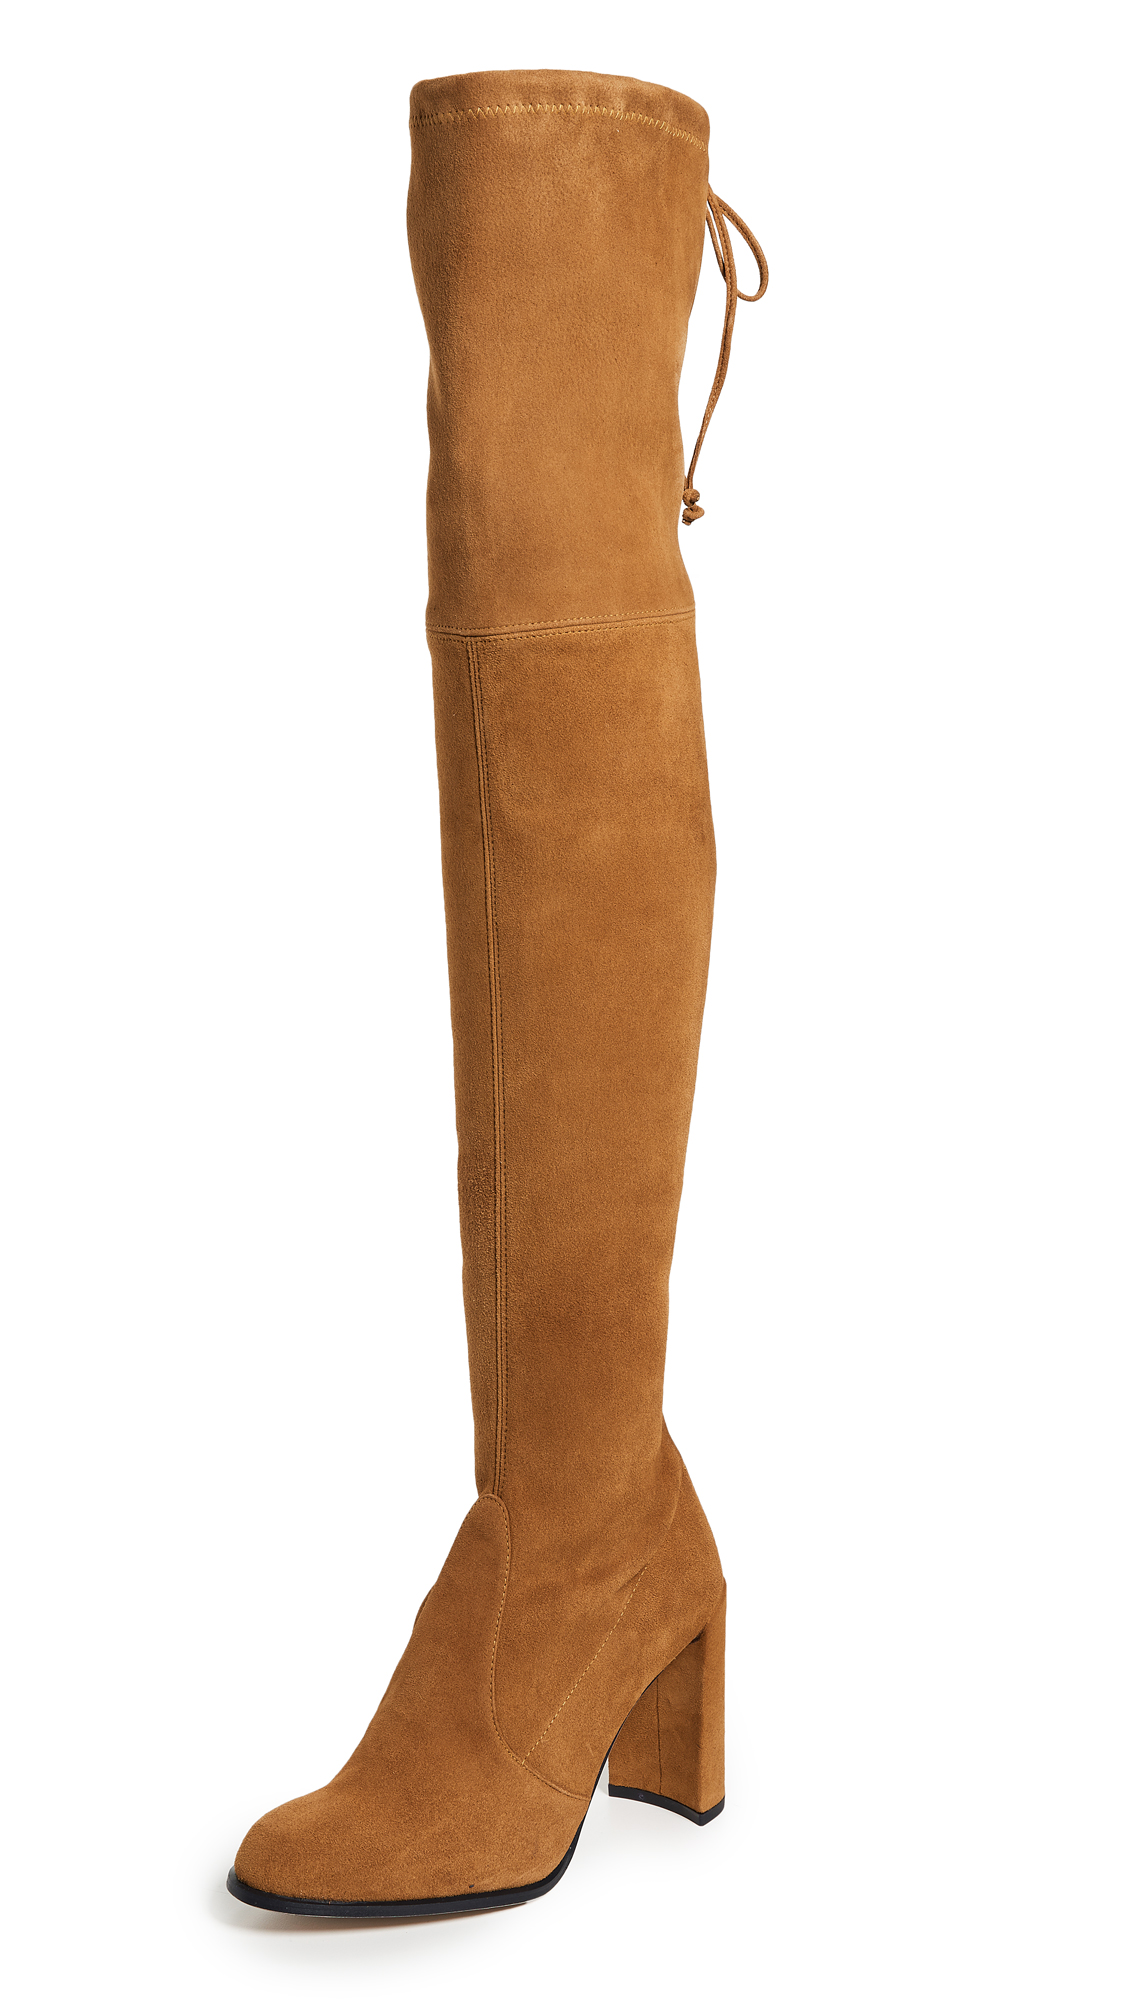 Stuart Weitzman Hiline Over the Knee Boots - Bridle